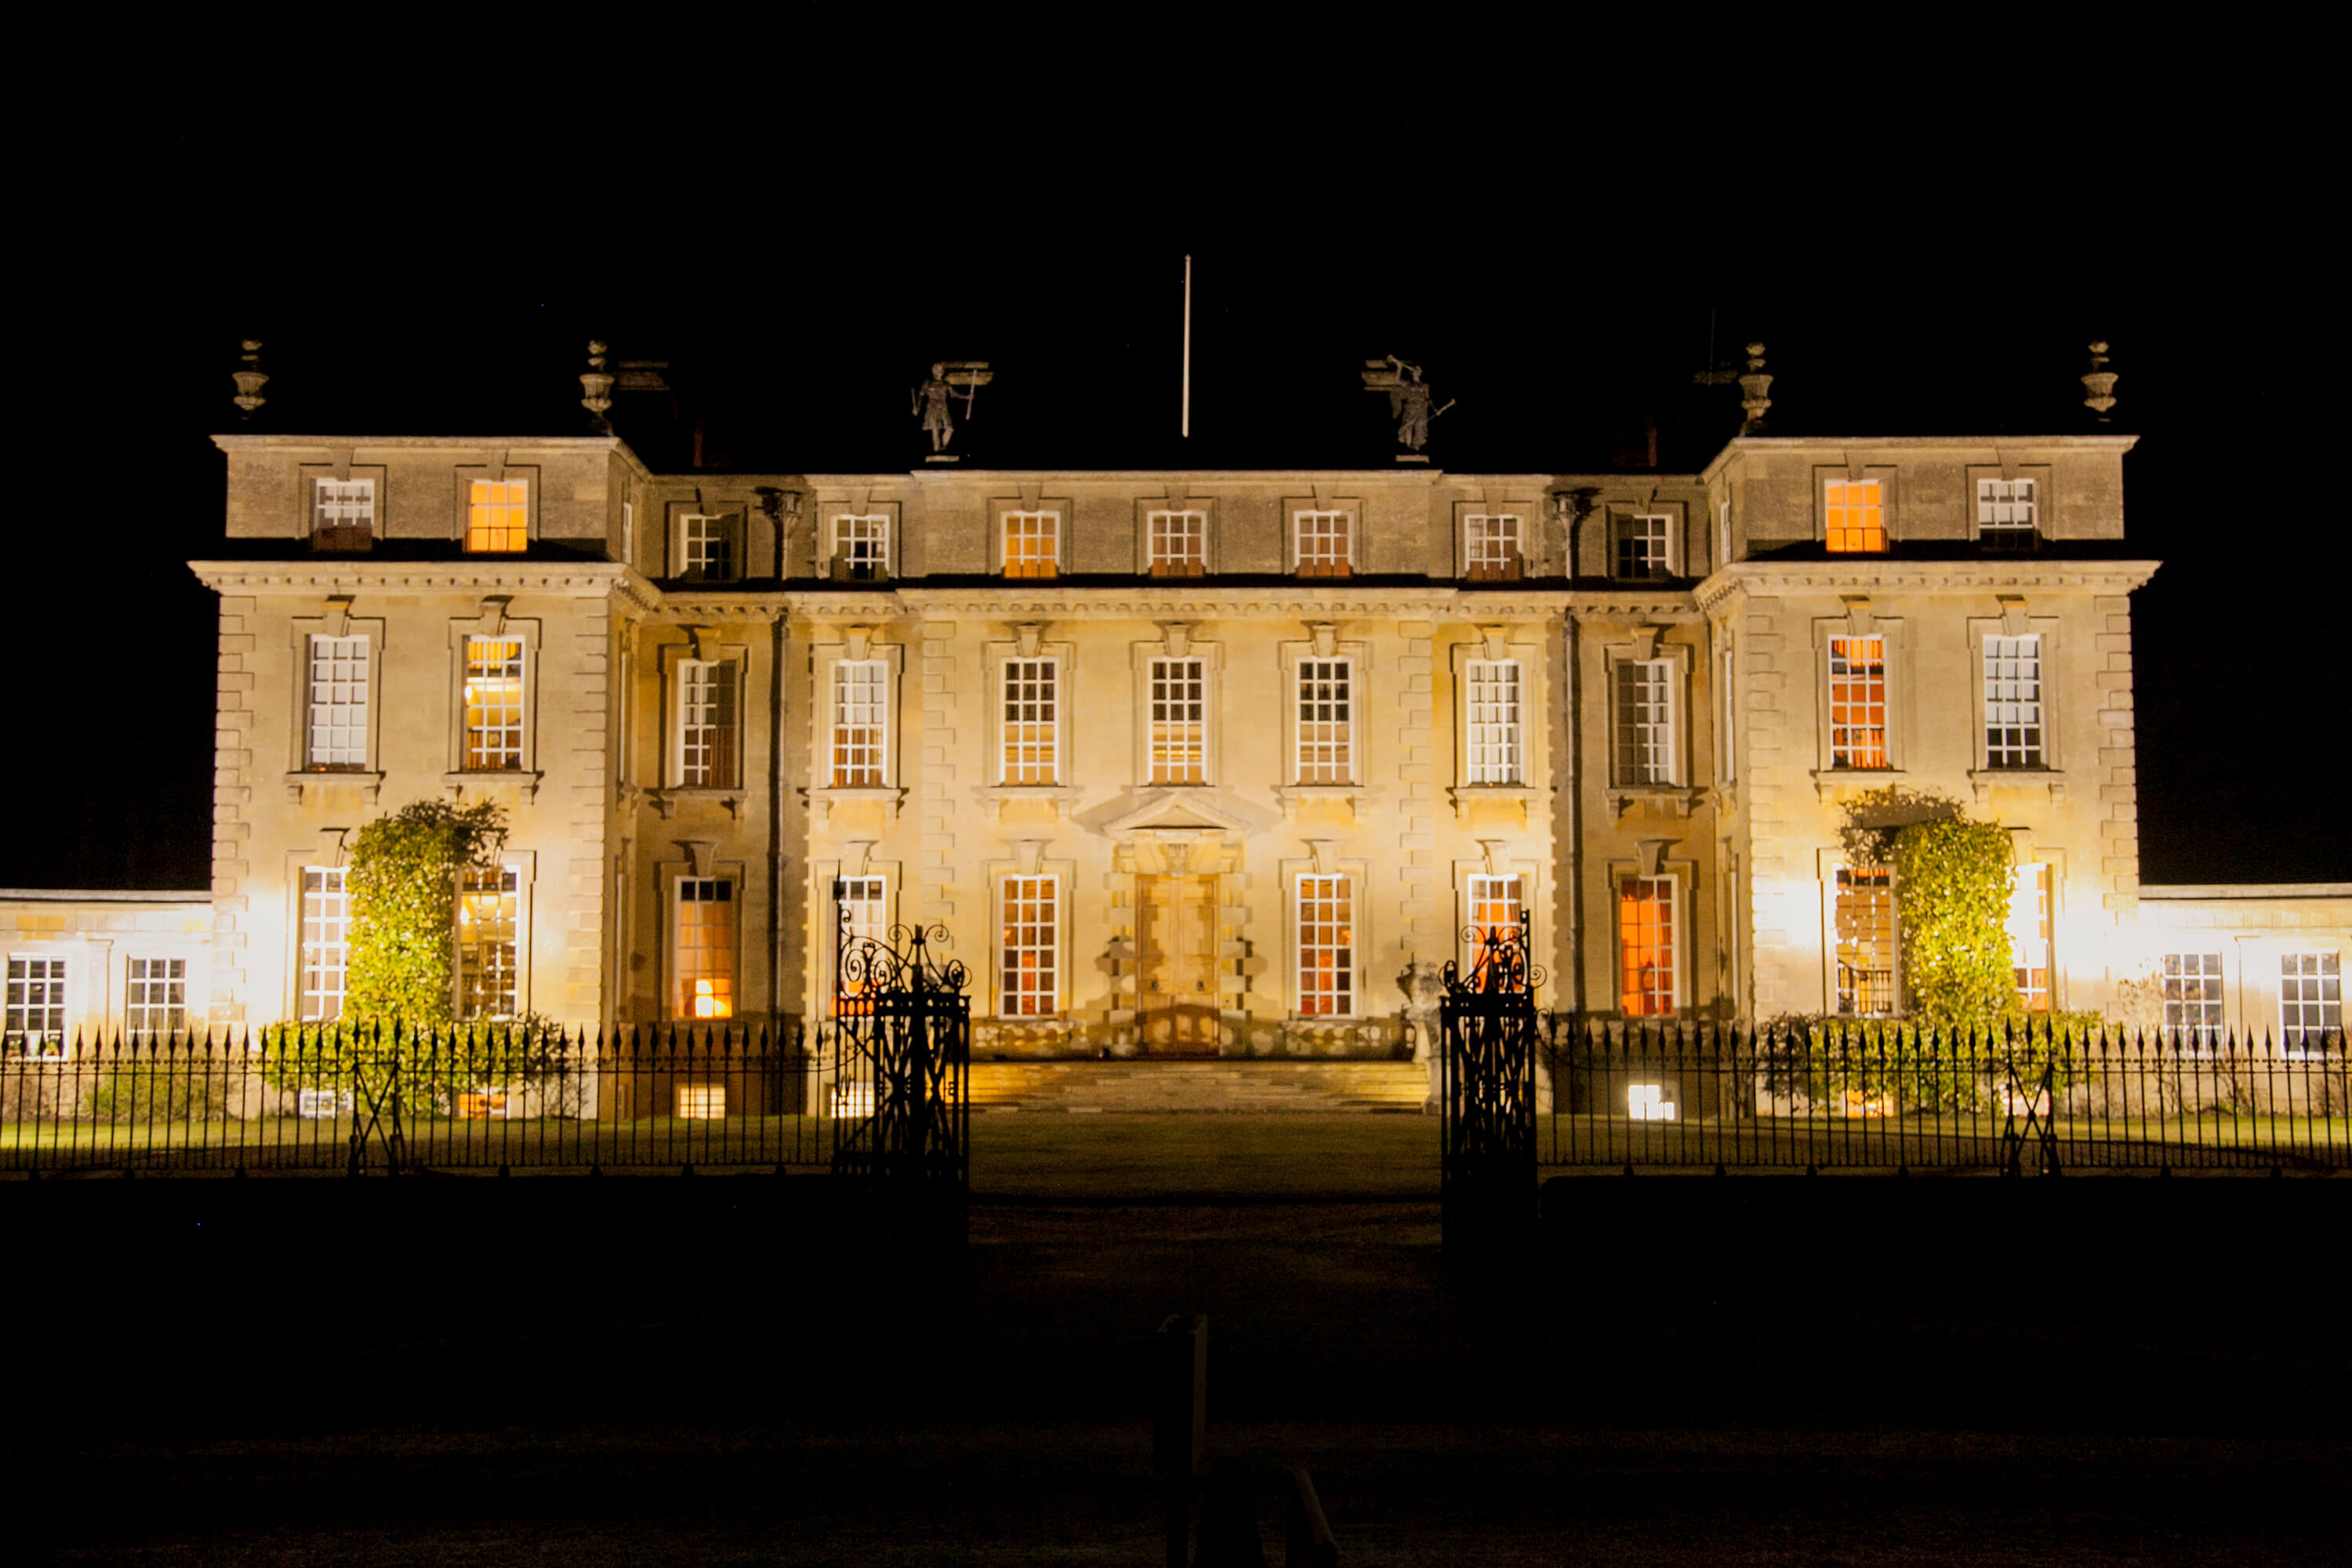 Ditchley Park. Credit: Silver Apples Photography. Transatlantic Working Group.